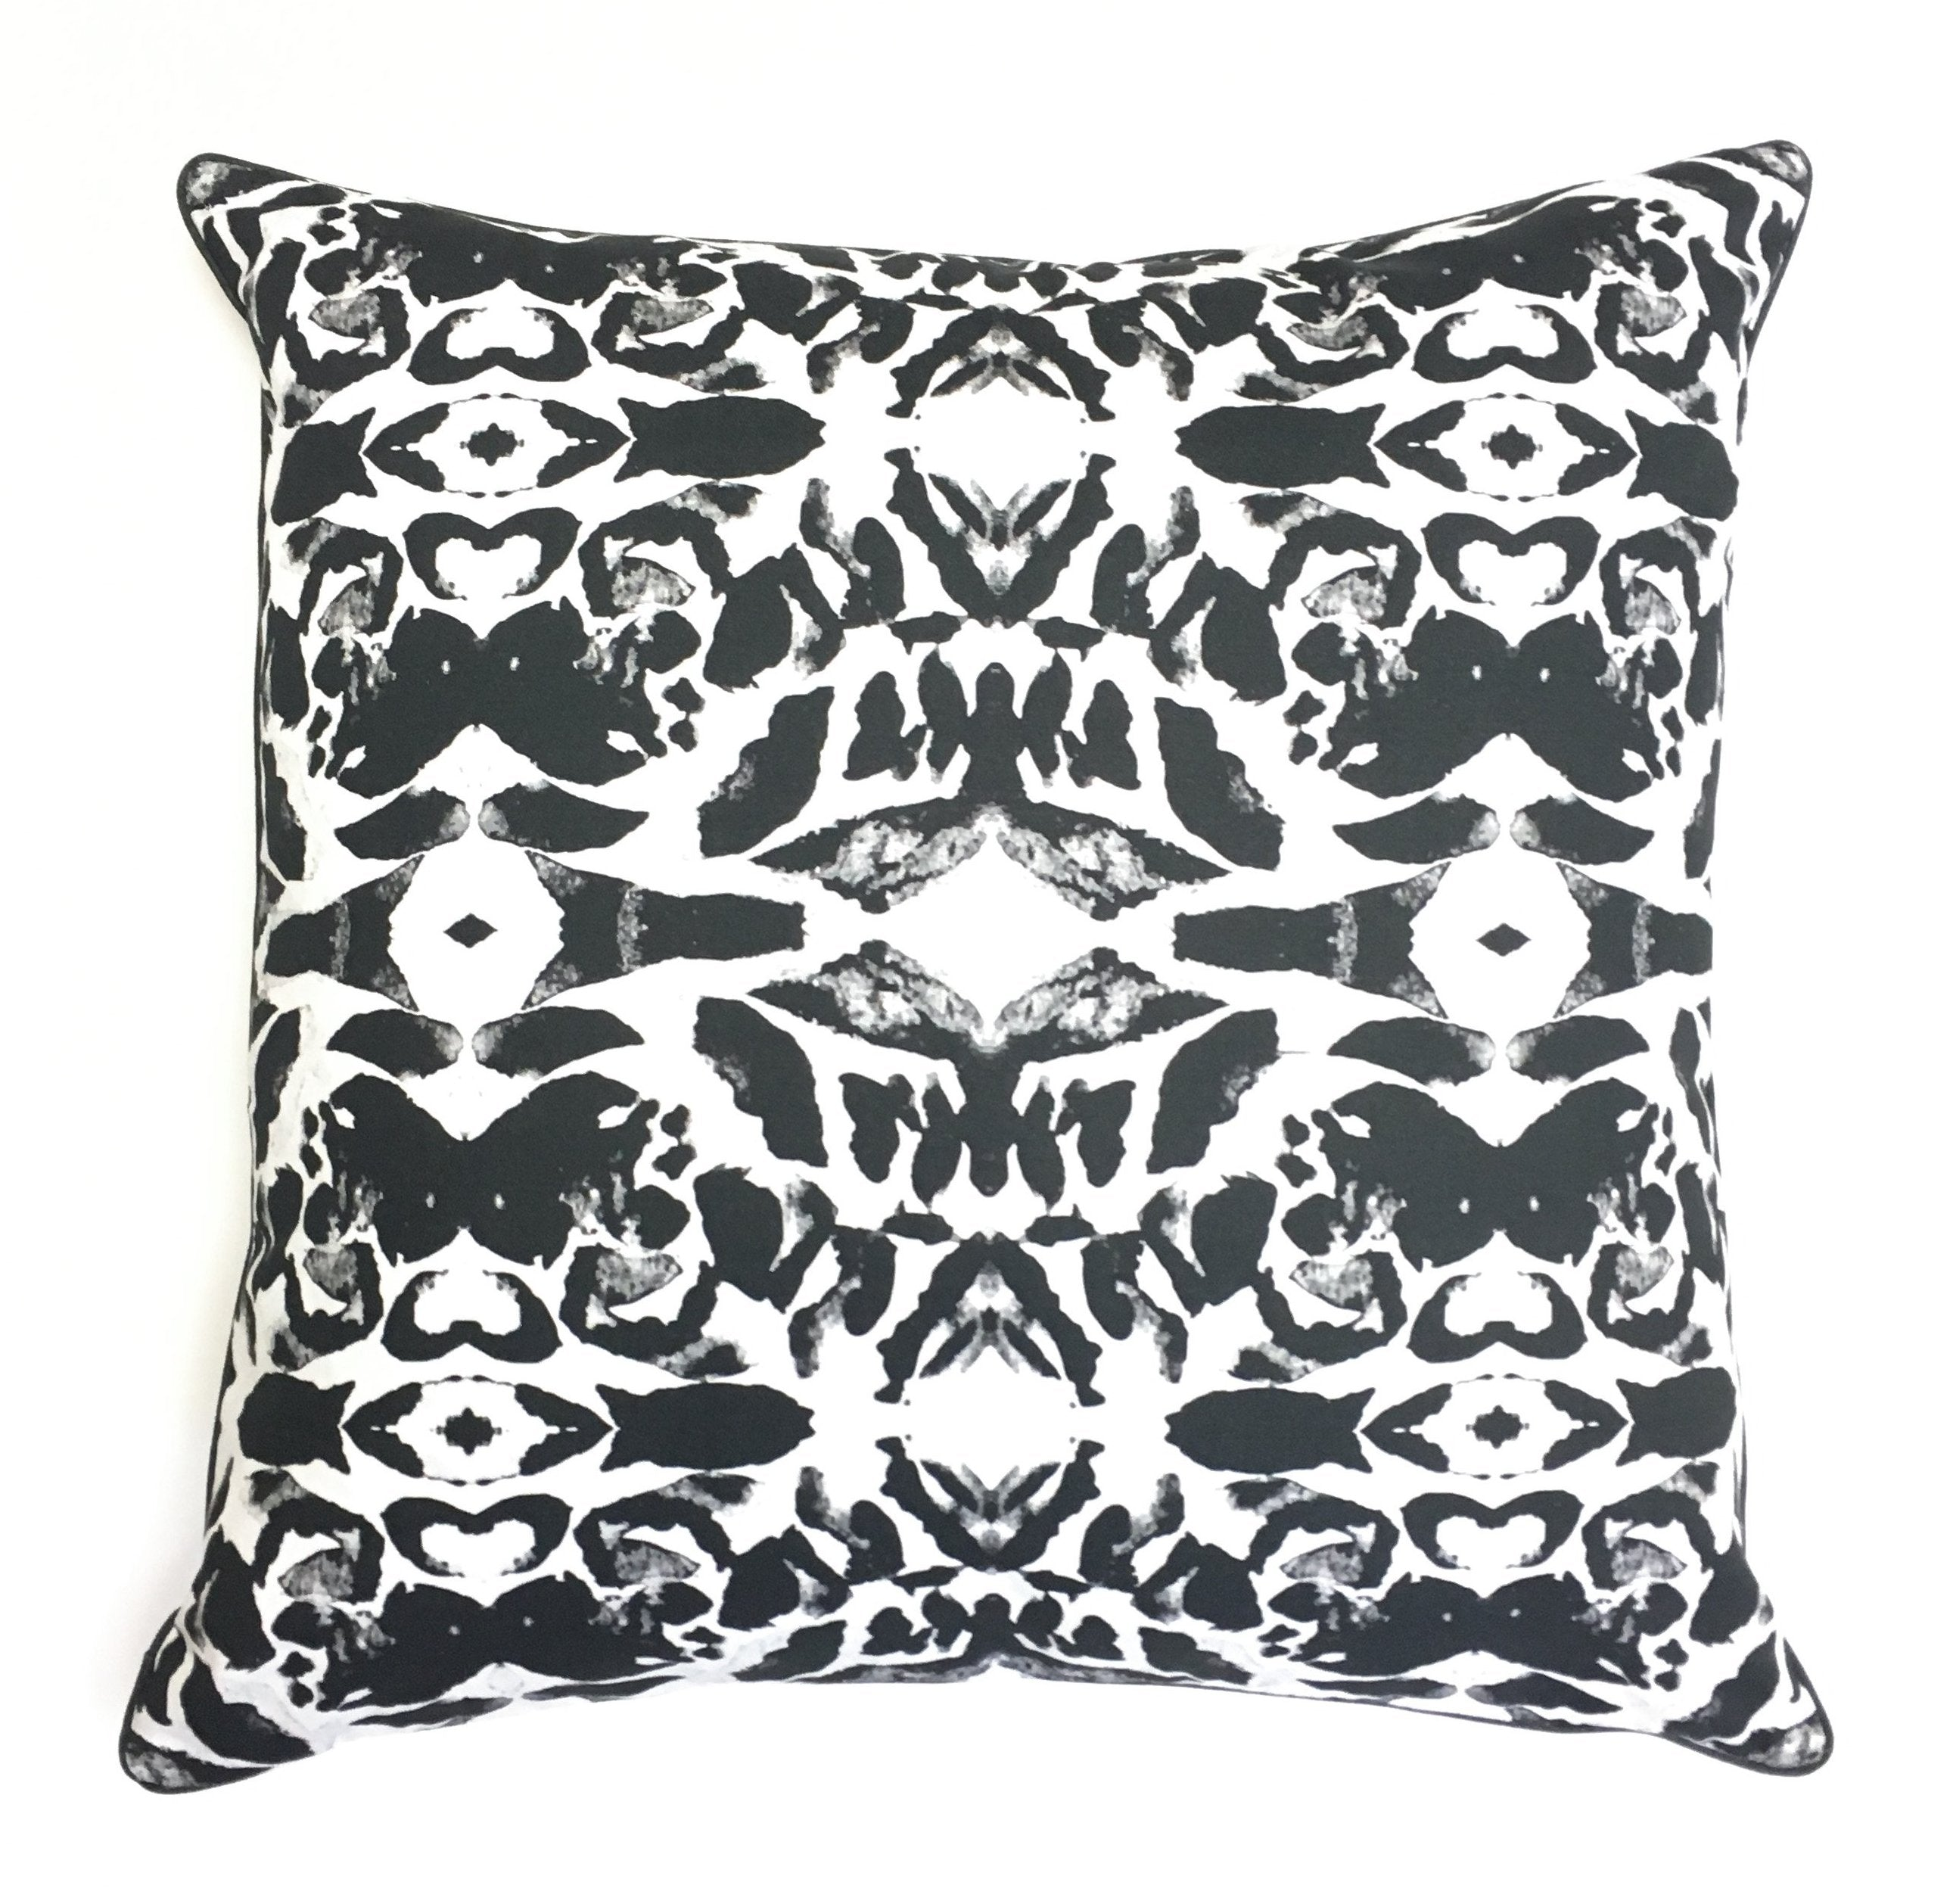 Pillow Cover - Moroccan (Black) - The Blush Label - Vibrant Resort Wear & Home Decor